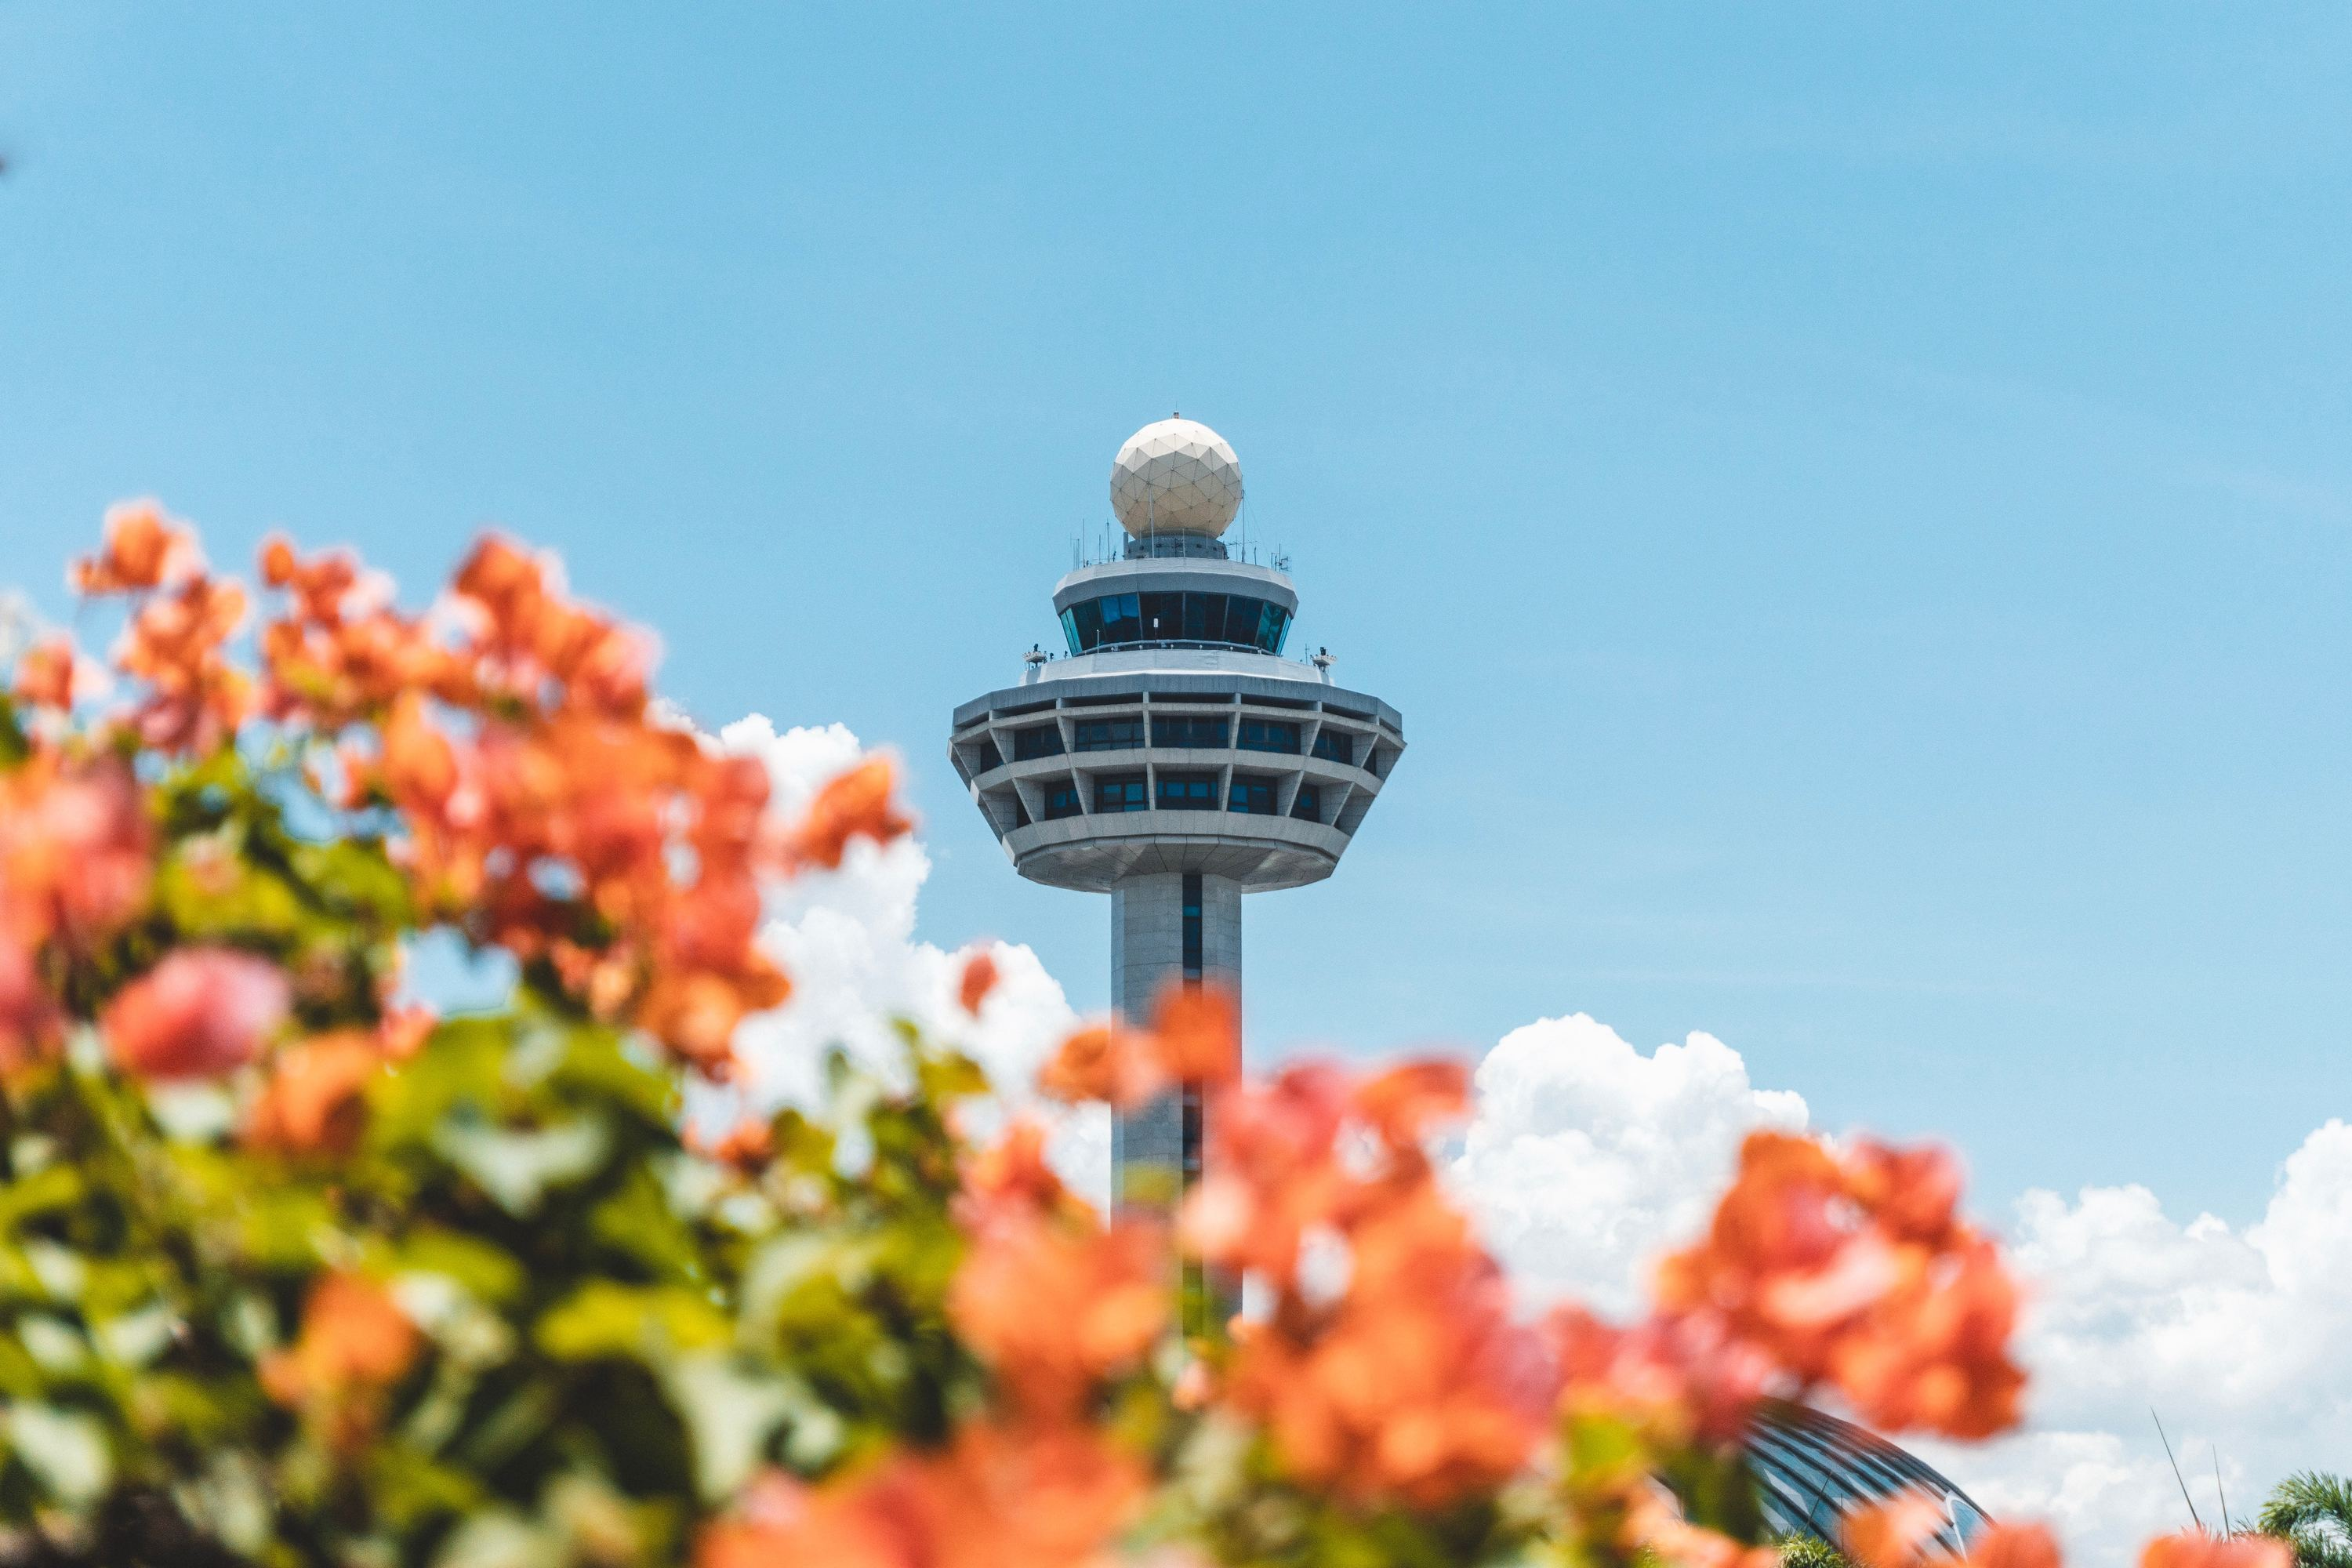 Changi control tower